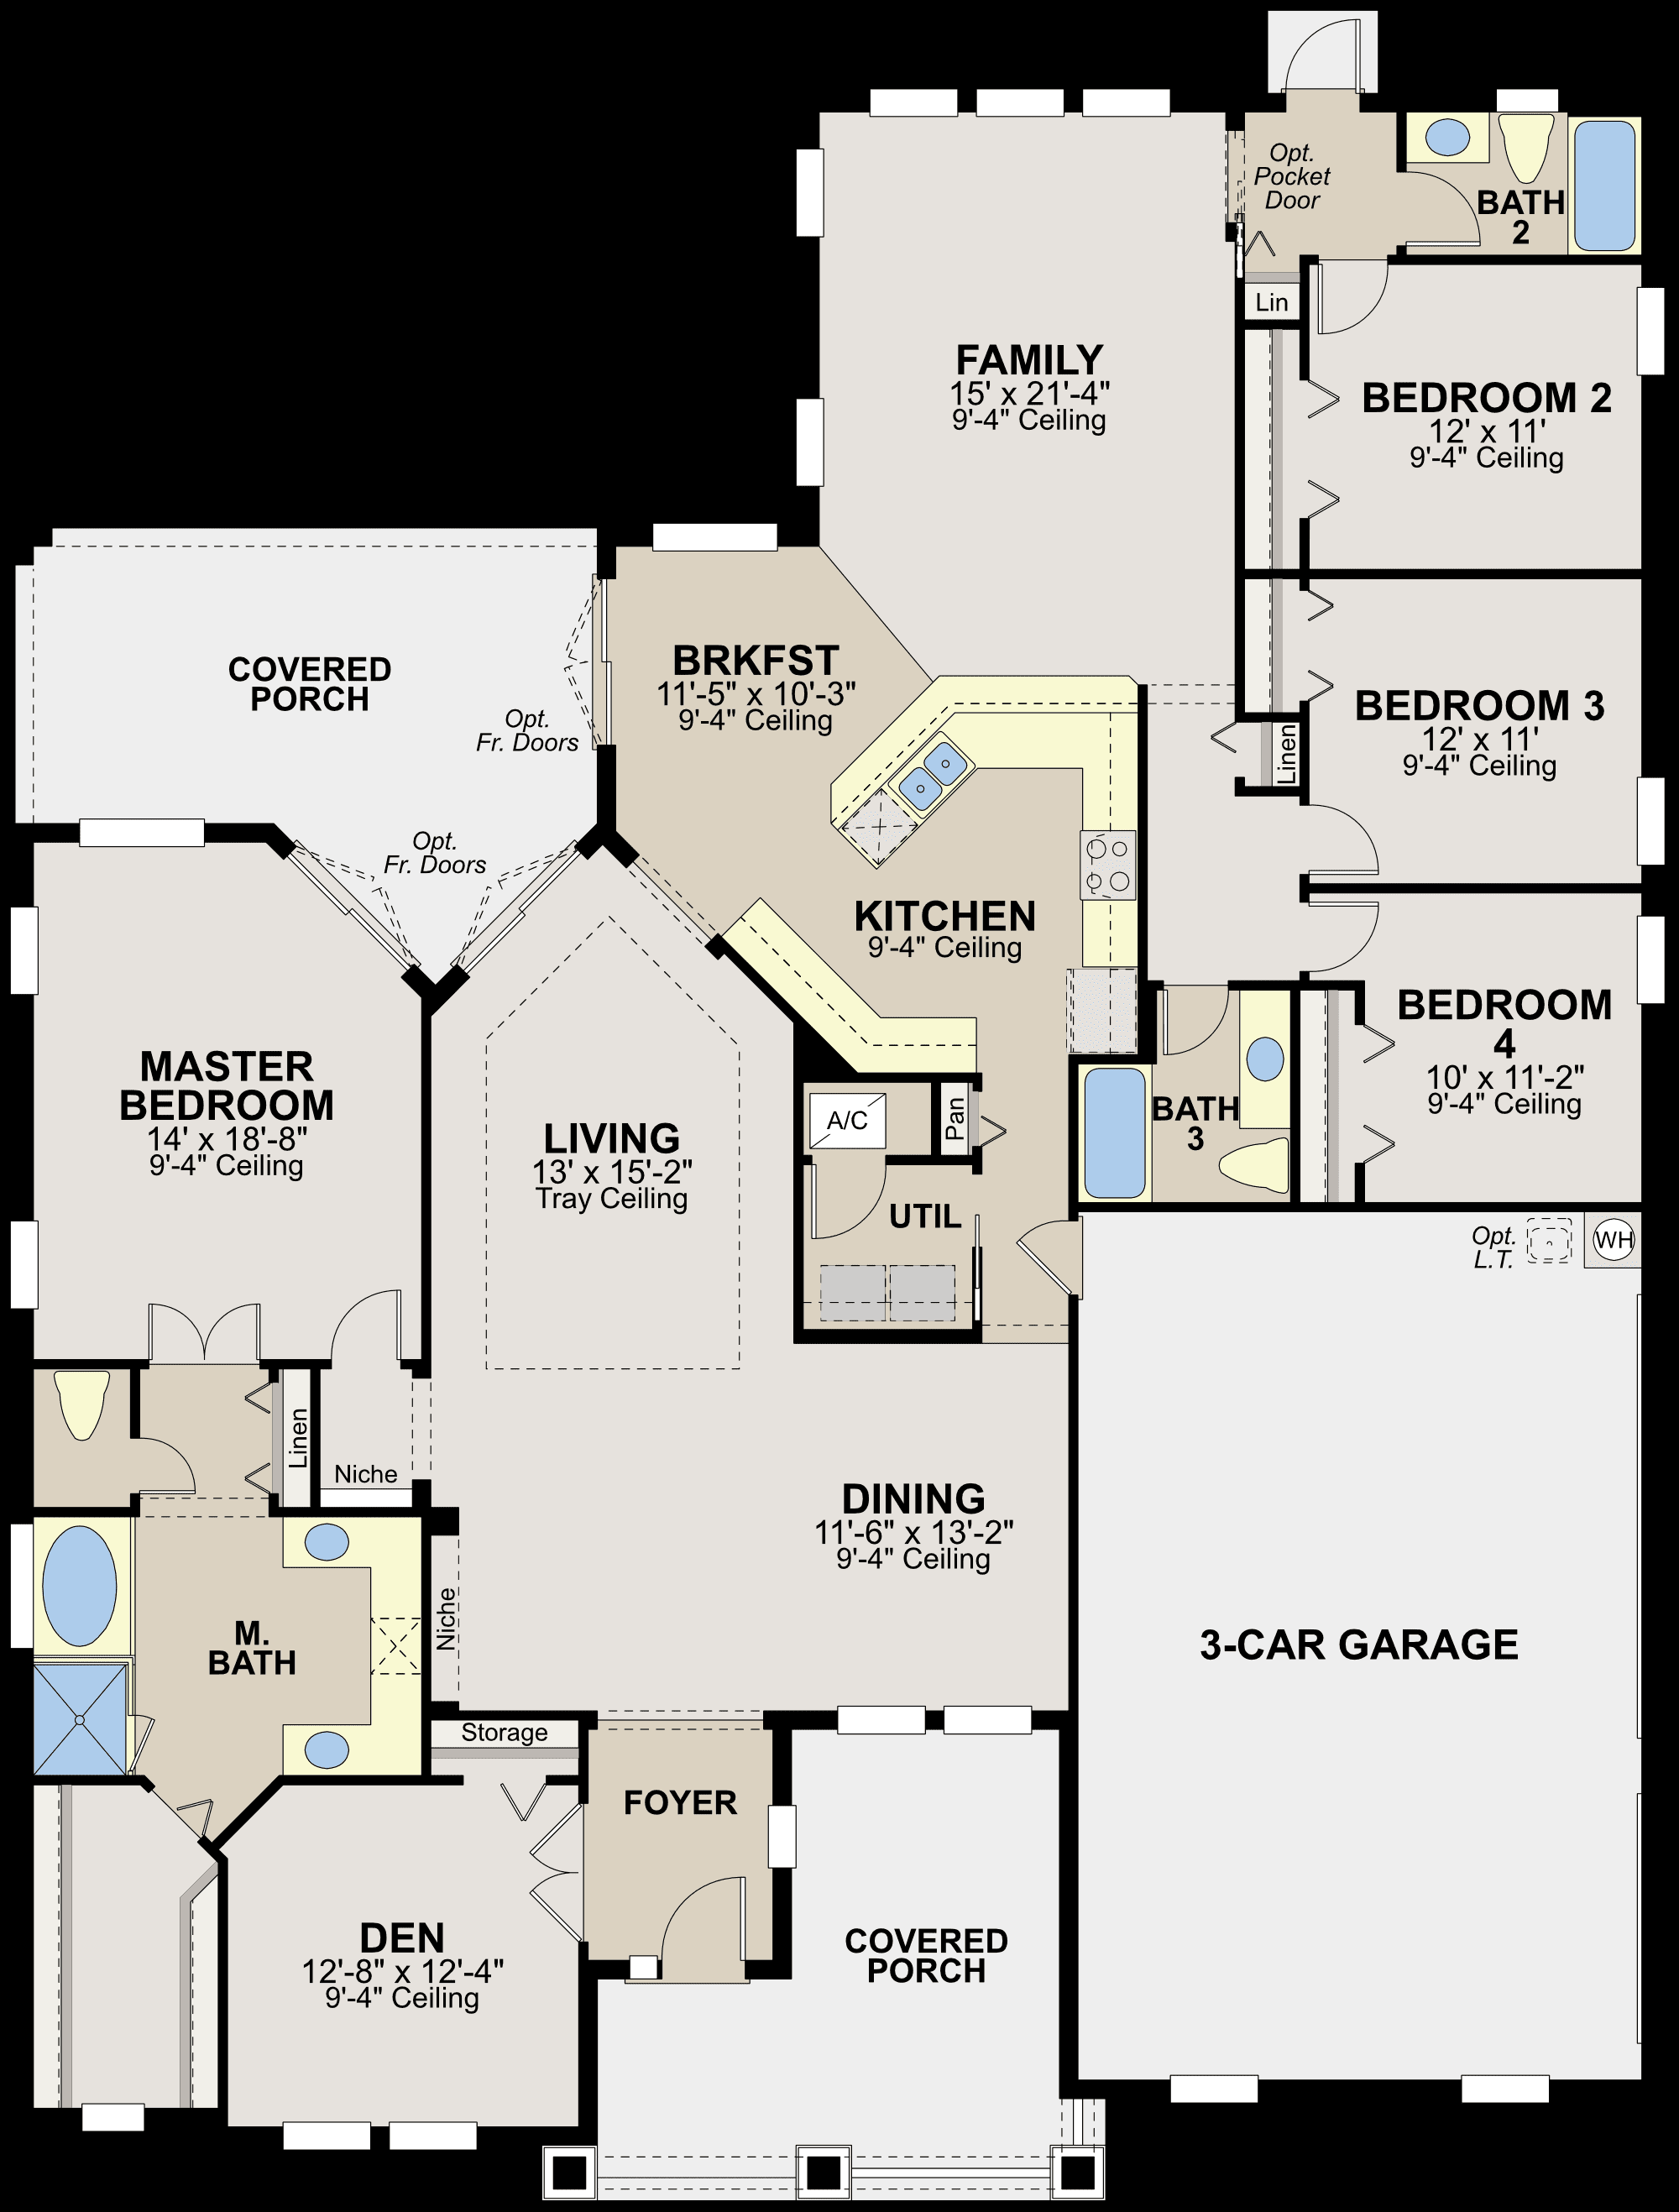 Ryland homes stockbridge floor plan home design and style for Ryland homes design center reviews